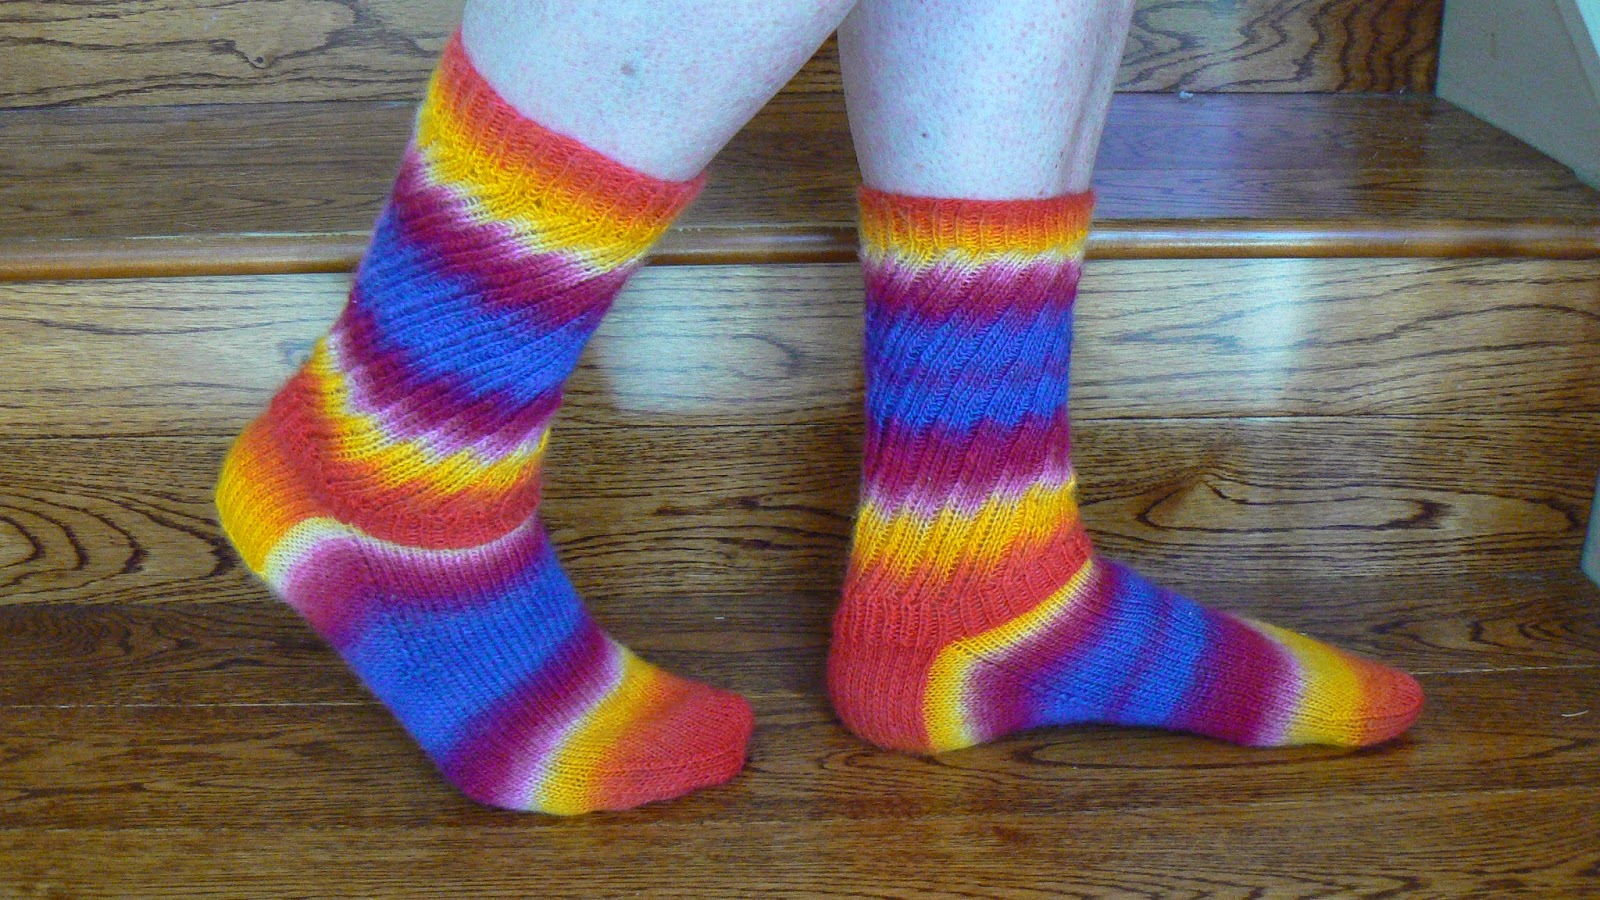 Fruit stripe gum socks